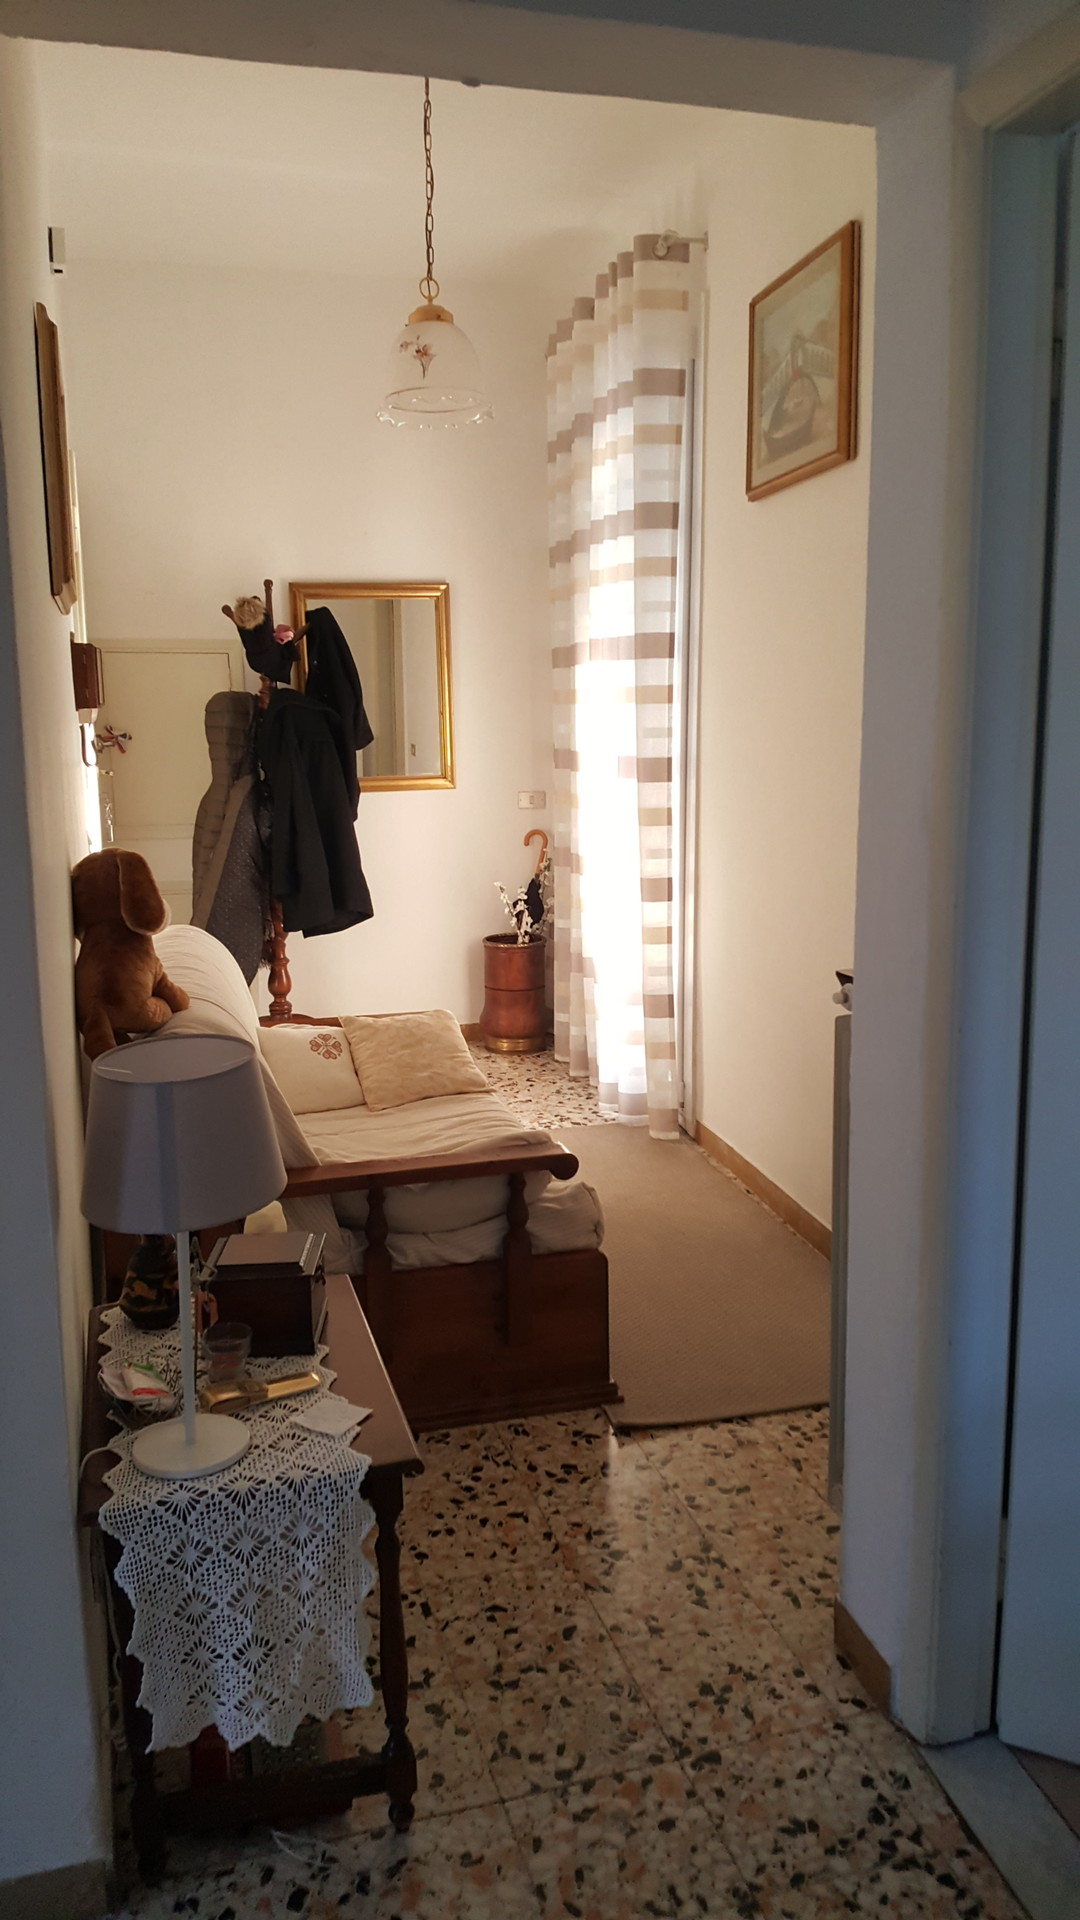 15 Mins By Walk From Duomo 70qm Flat 20qm Room Room For Rent